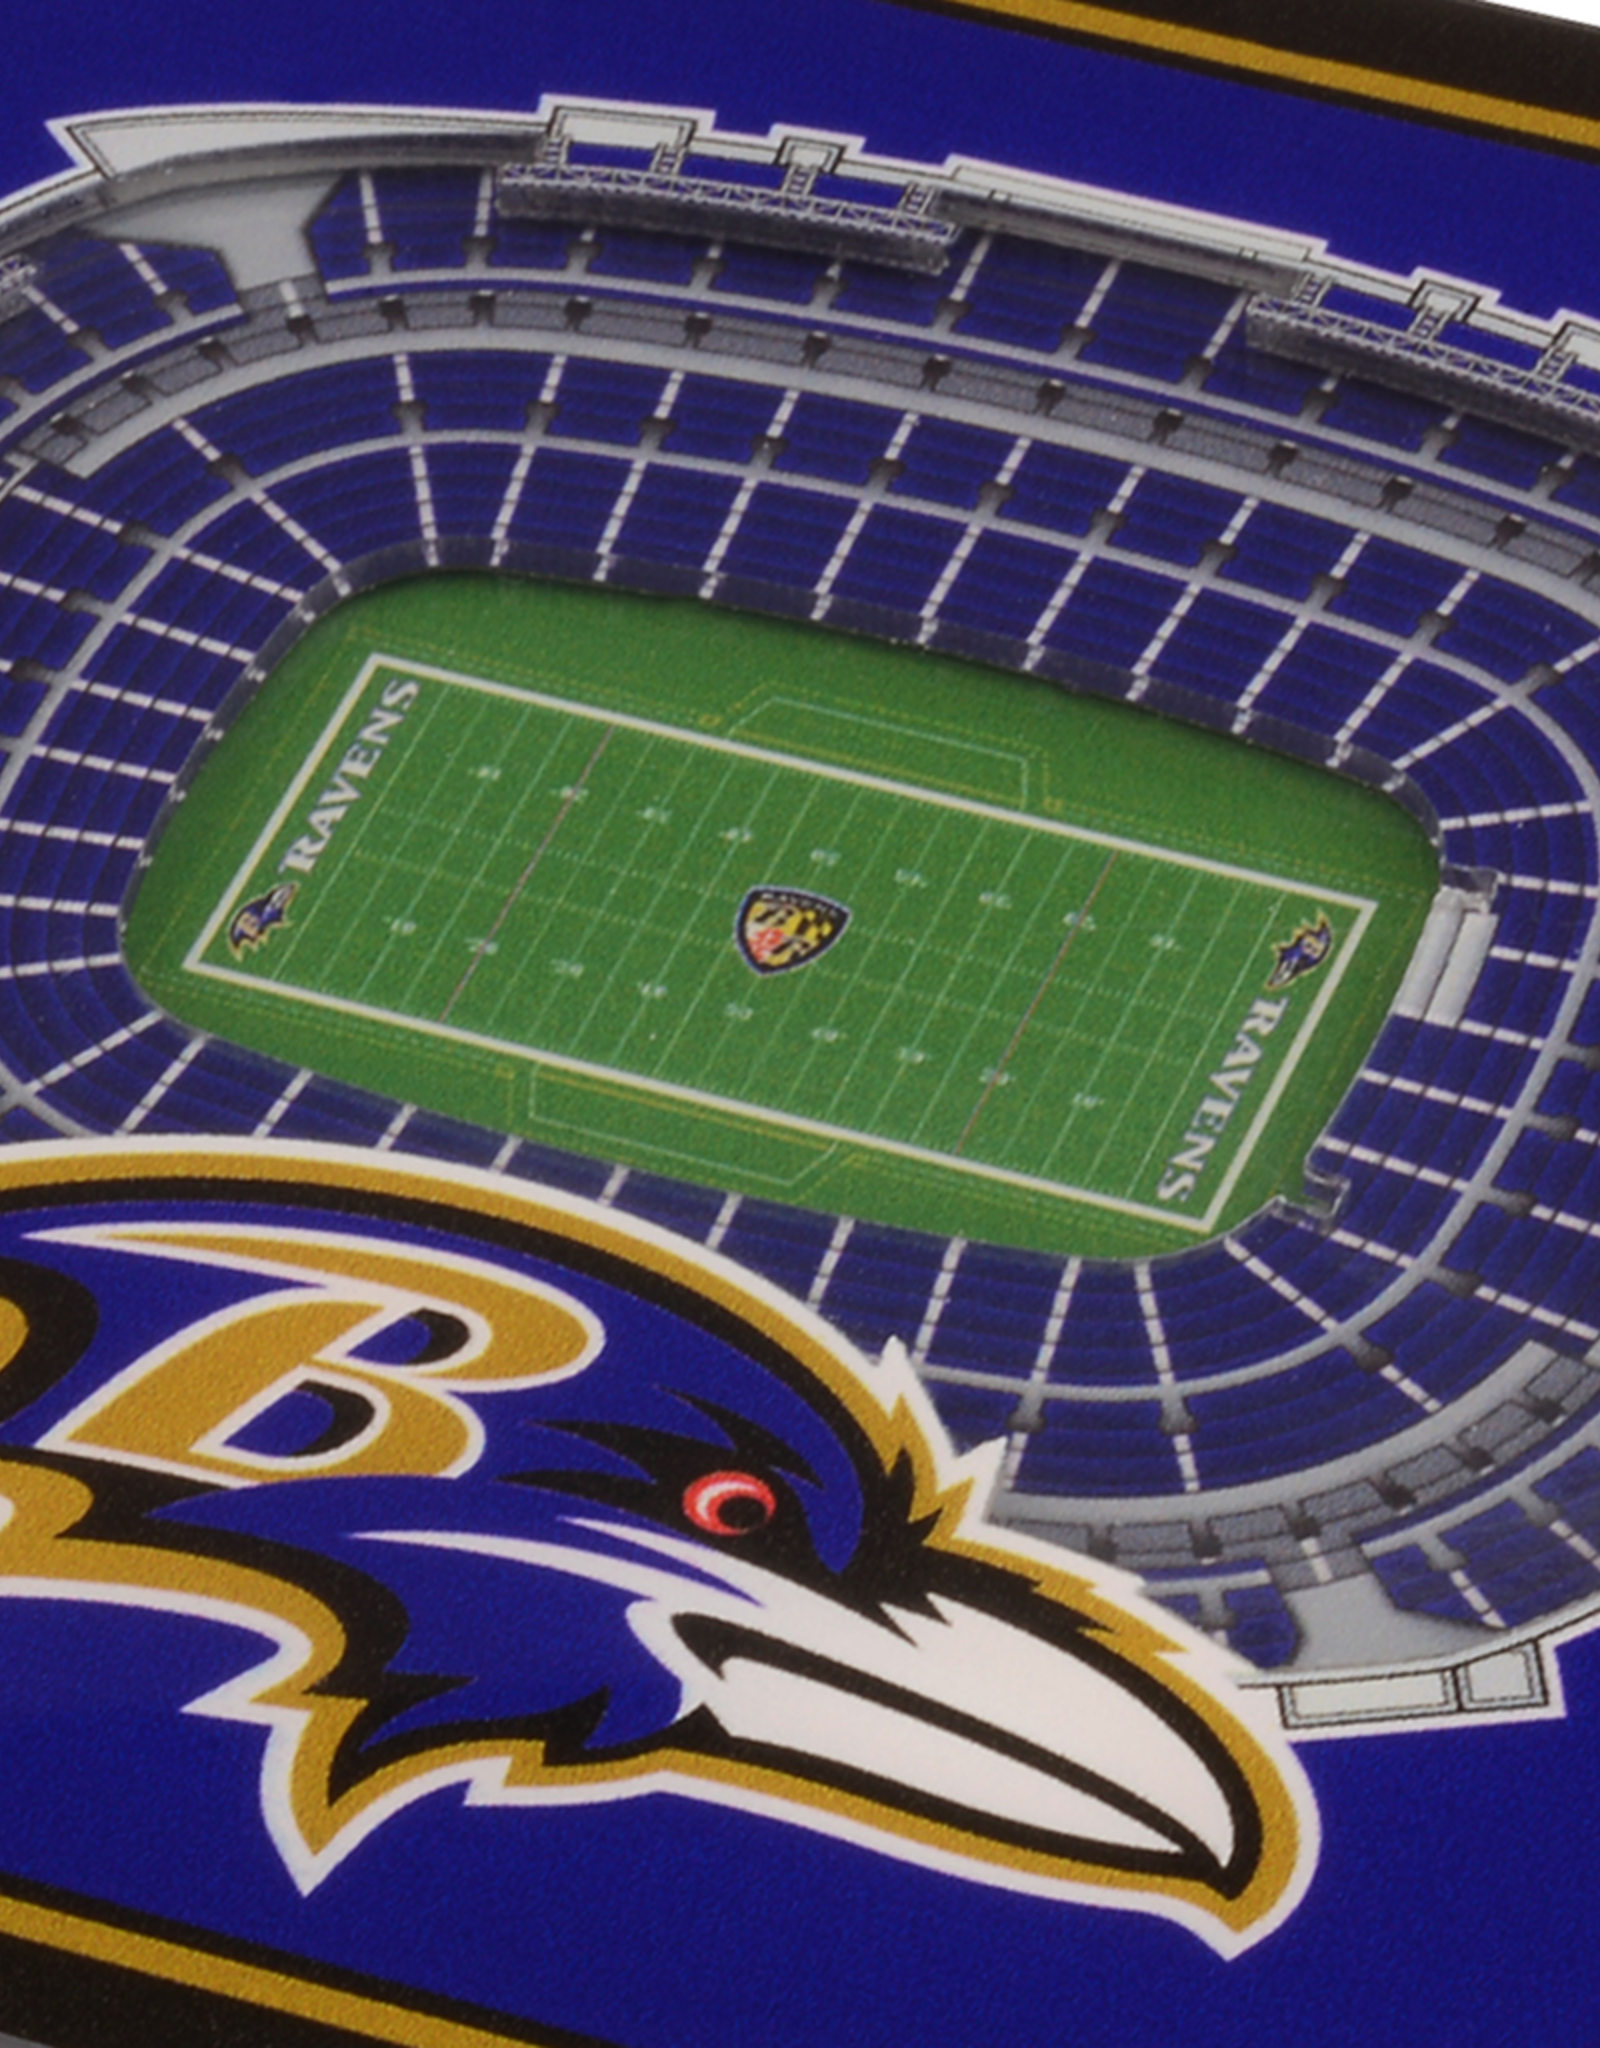 YOU THE FAN Baltimore Ravens 3-D StadiumViews Coasters 2-Pack